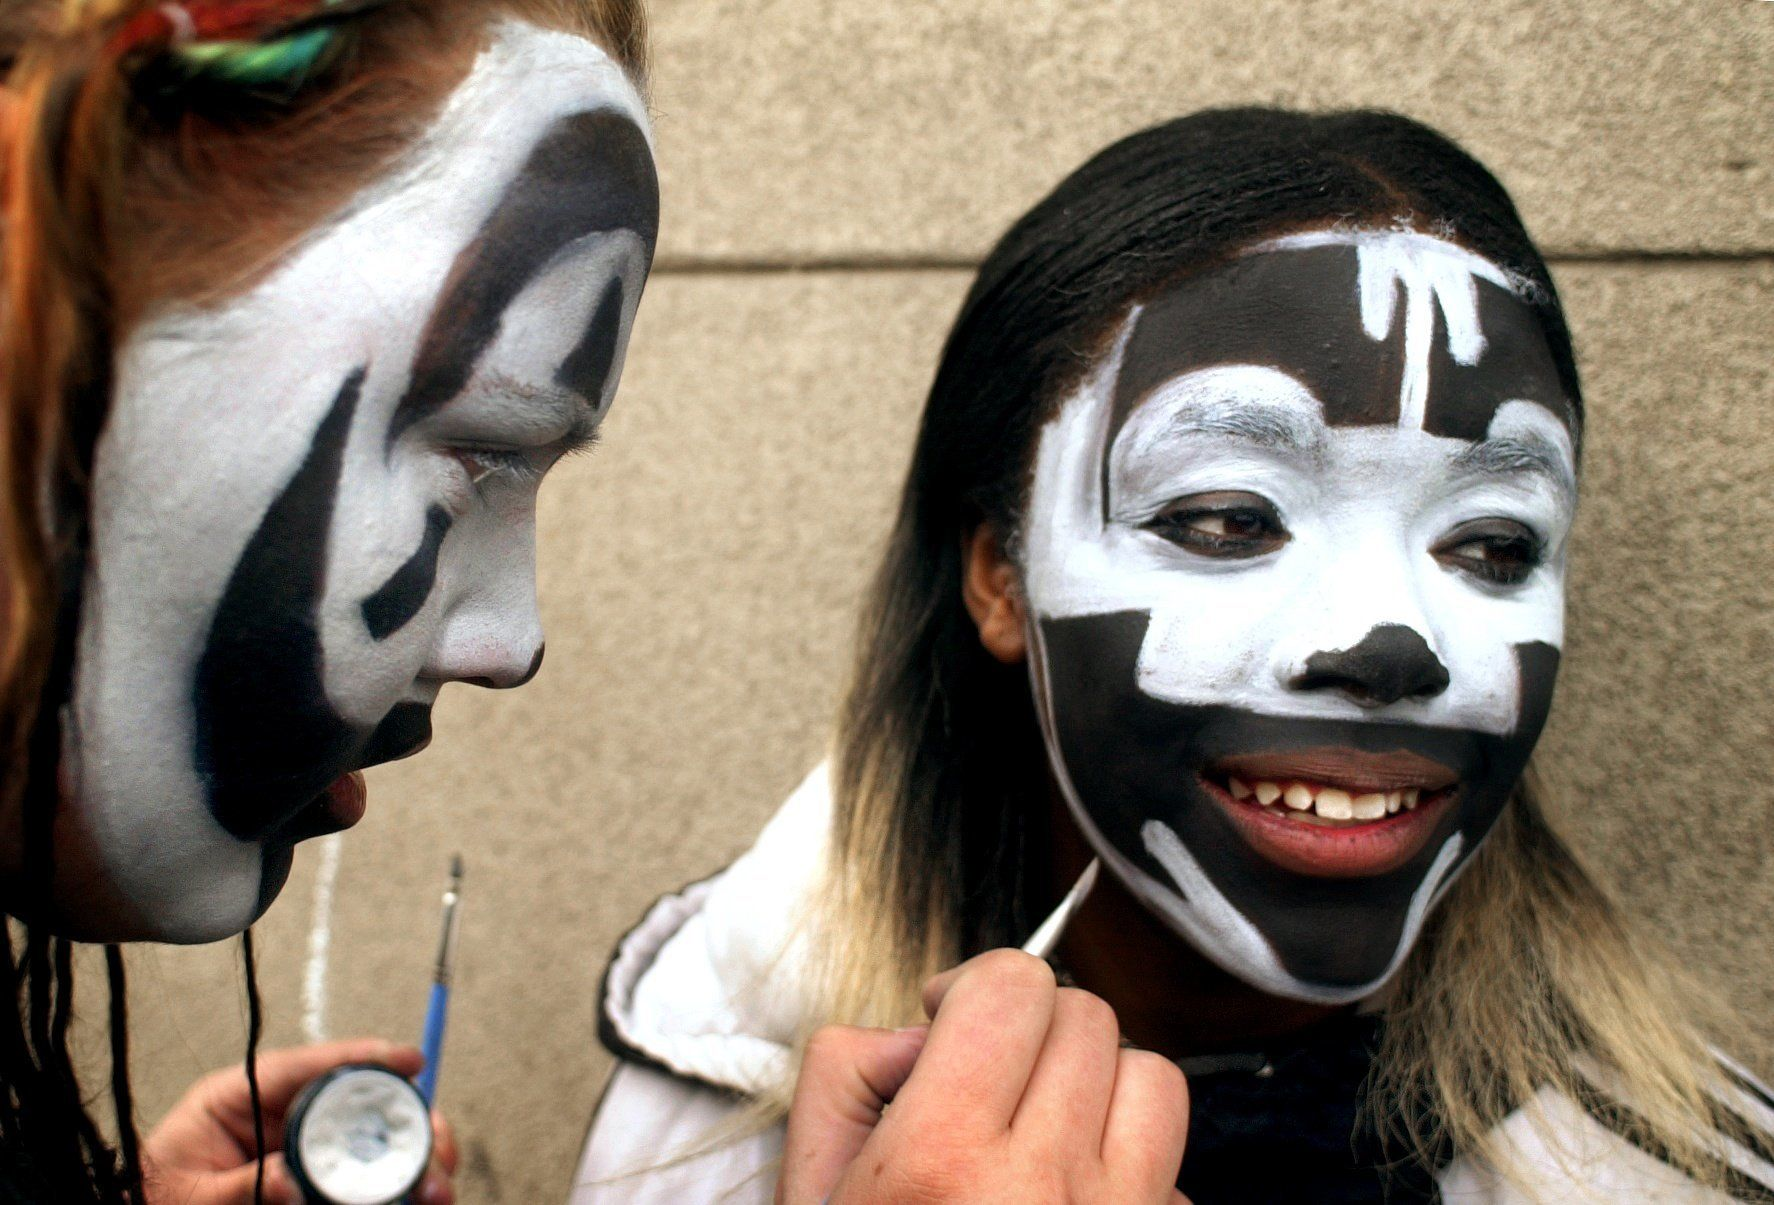 Juggalos And Trump Supporters Set To Face Off In Washington DC